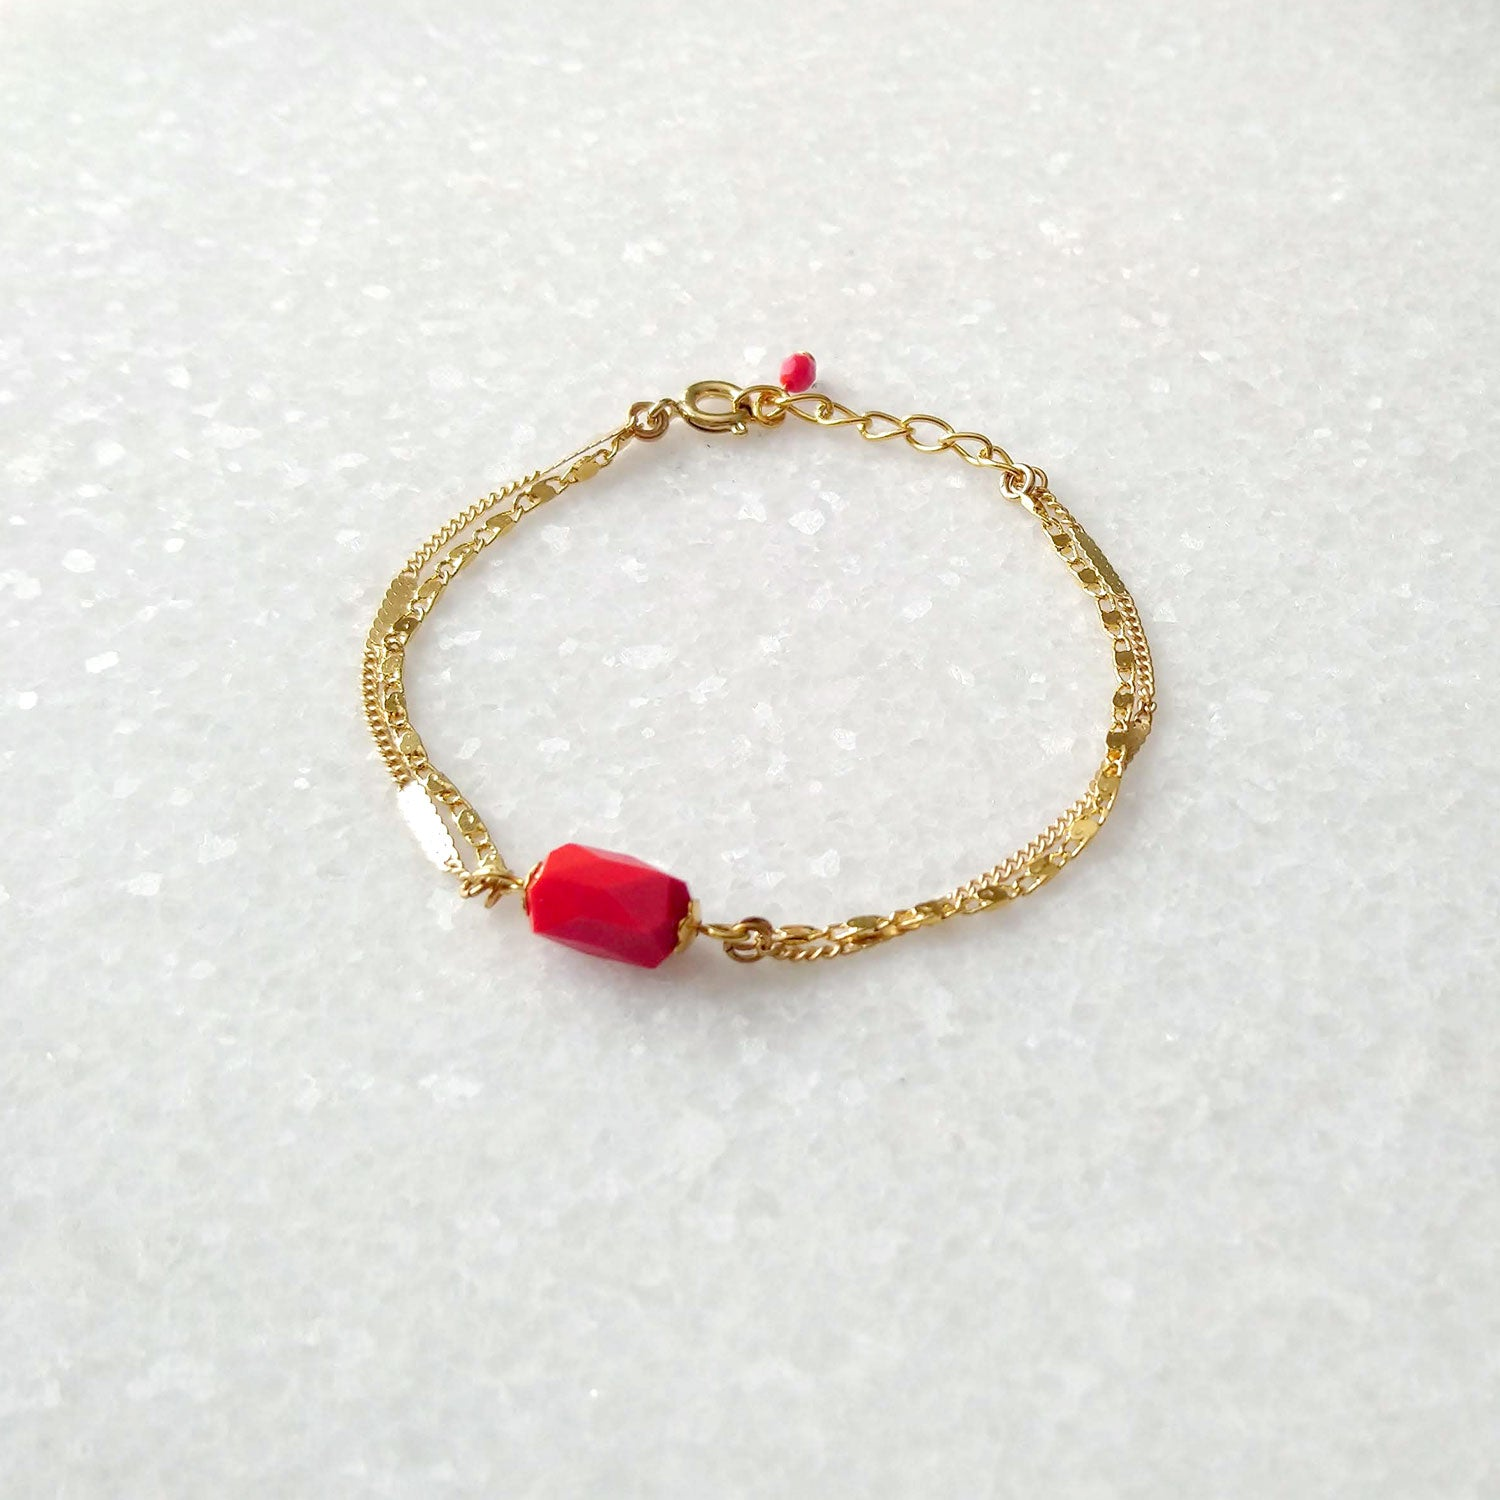 Reg and gold bracelet multilayers